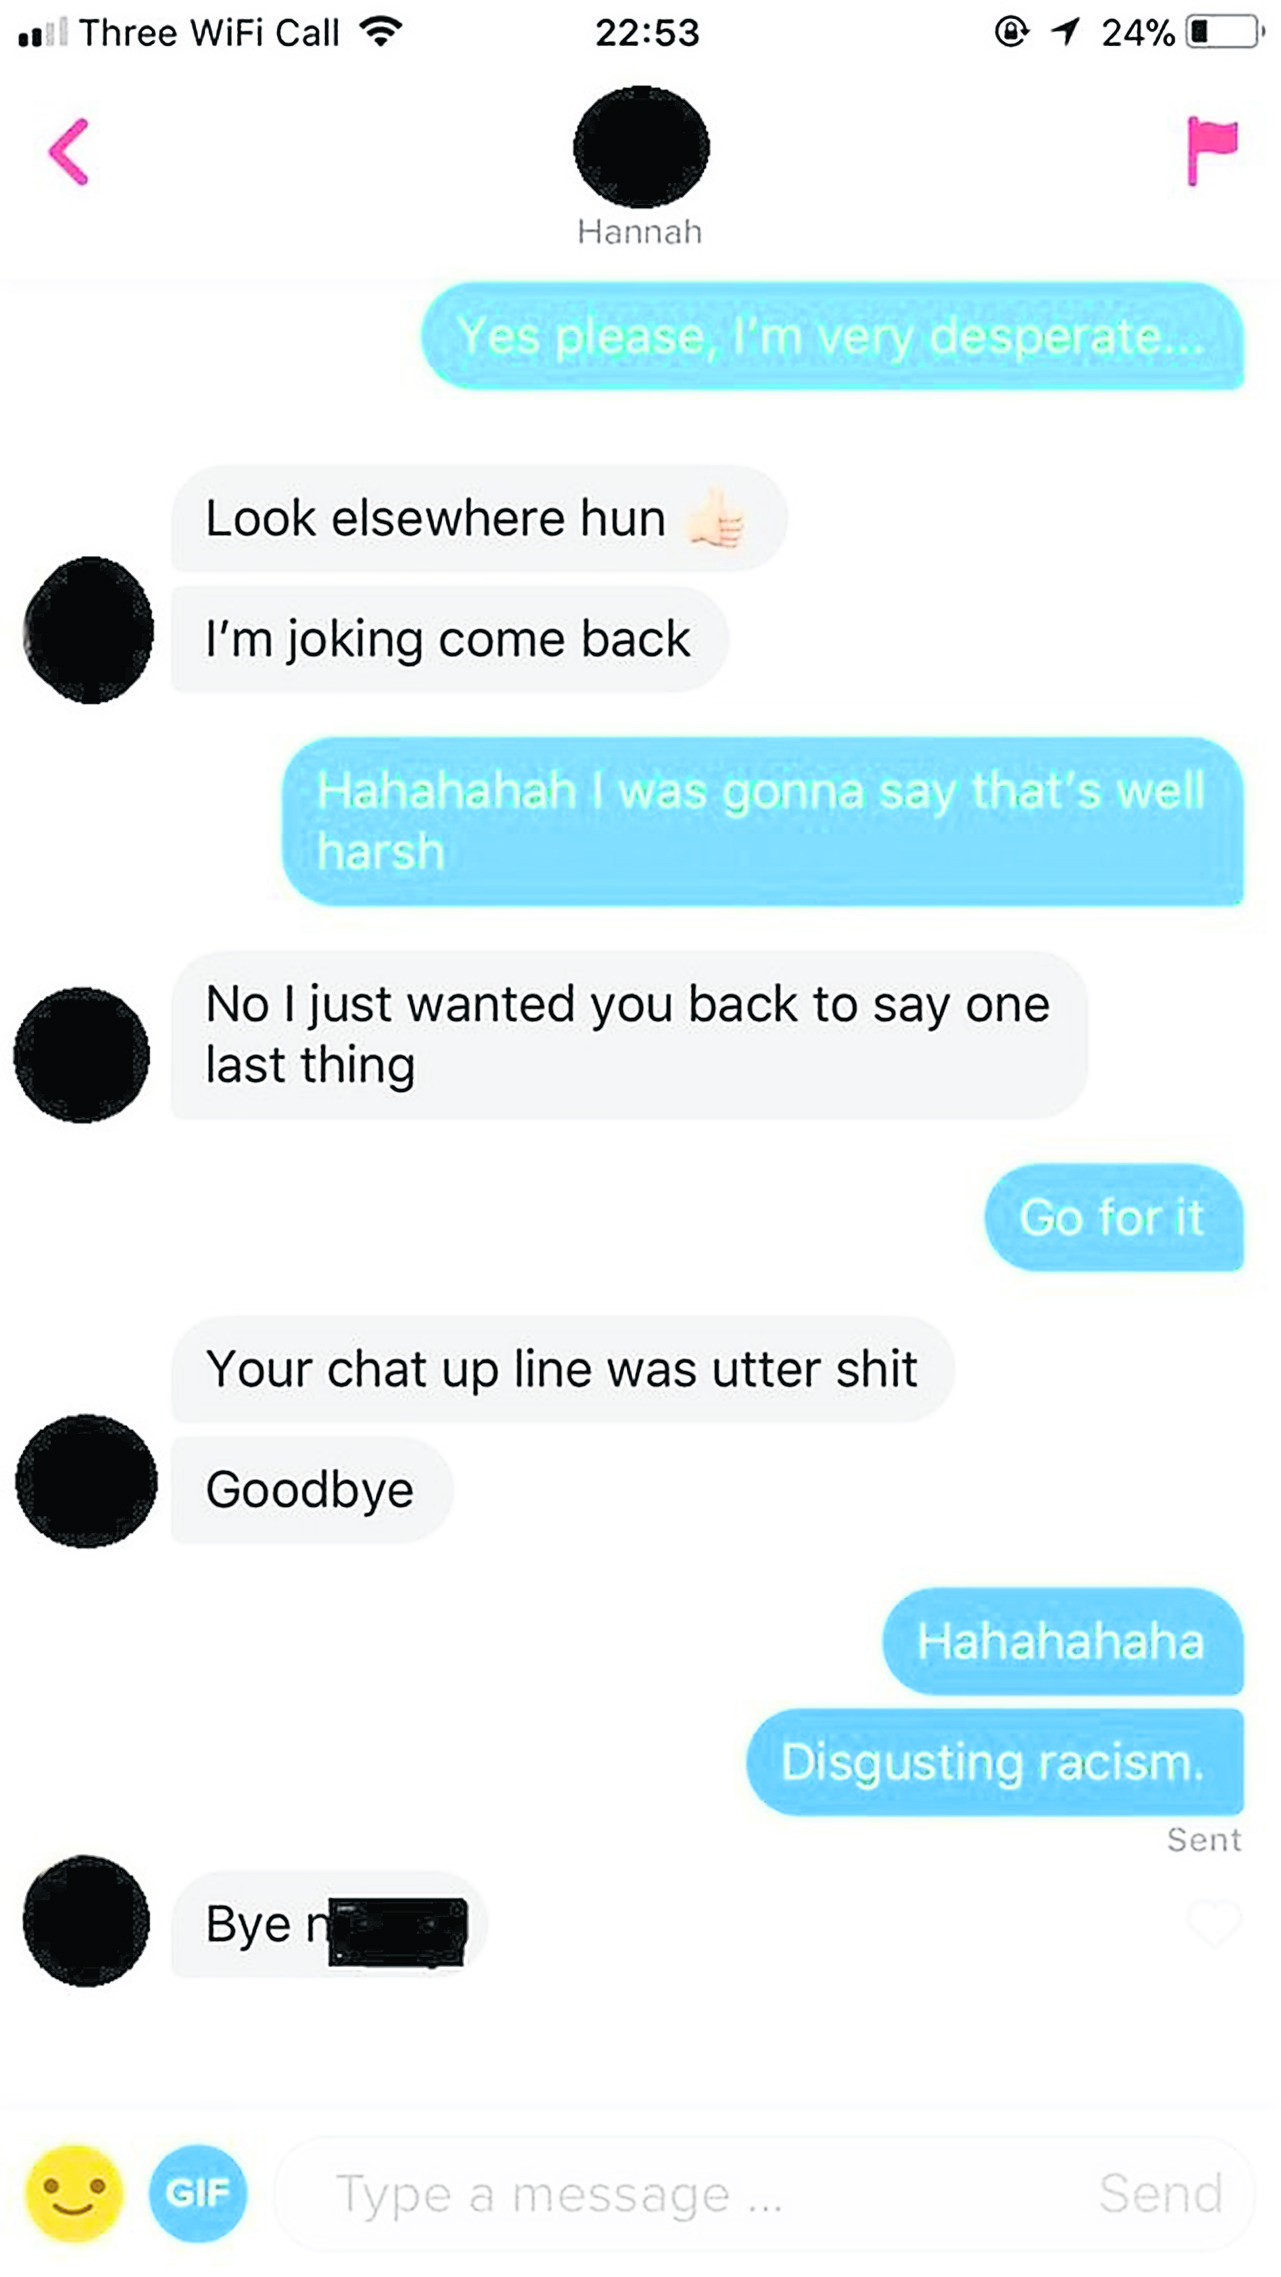 KU student racially abused by Tinder match | River Online